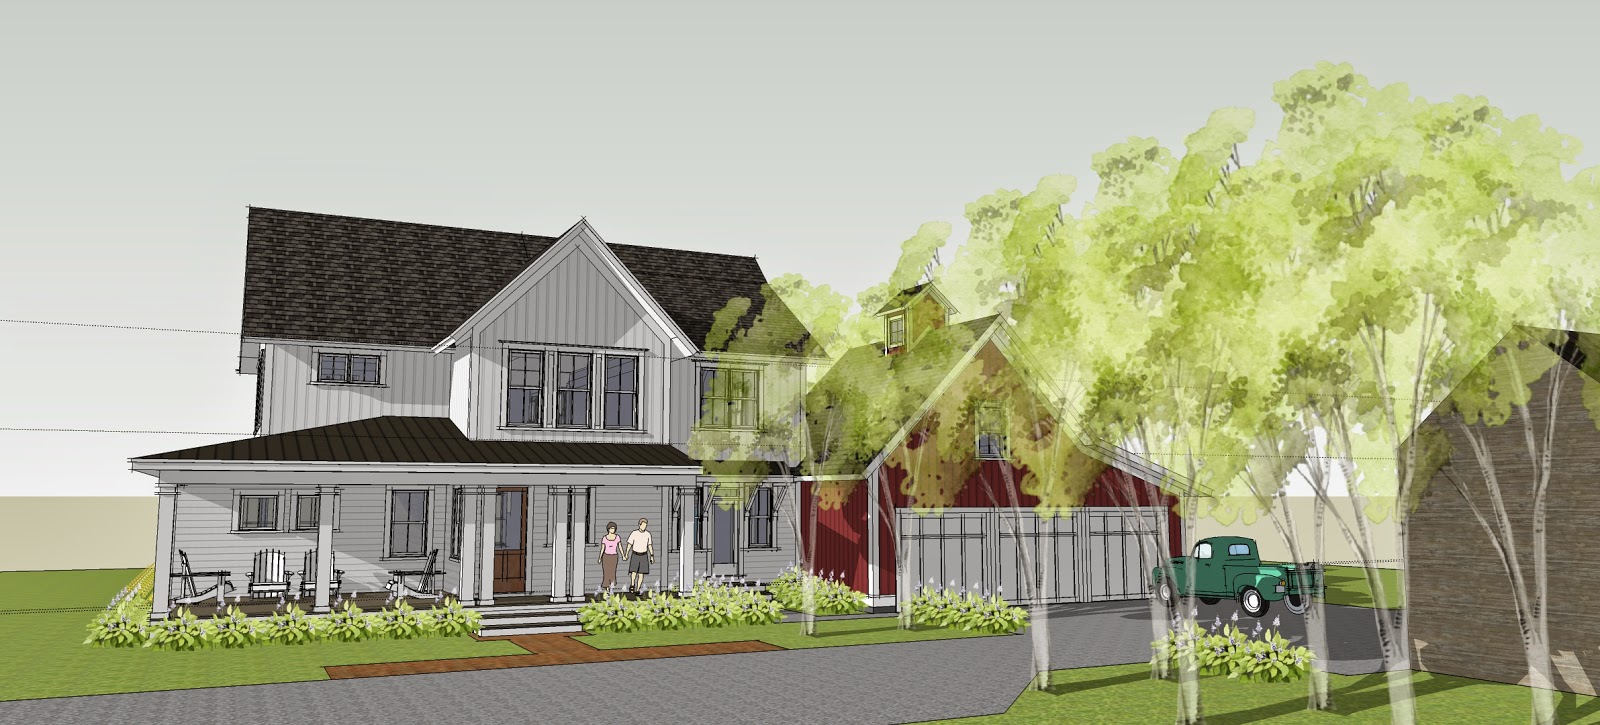 Simply elegant home designs blog new modern farmhouse by for Modern farmhouse architecture plans